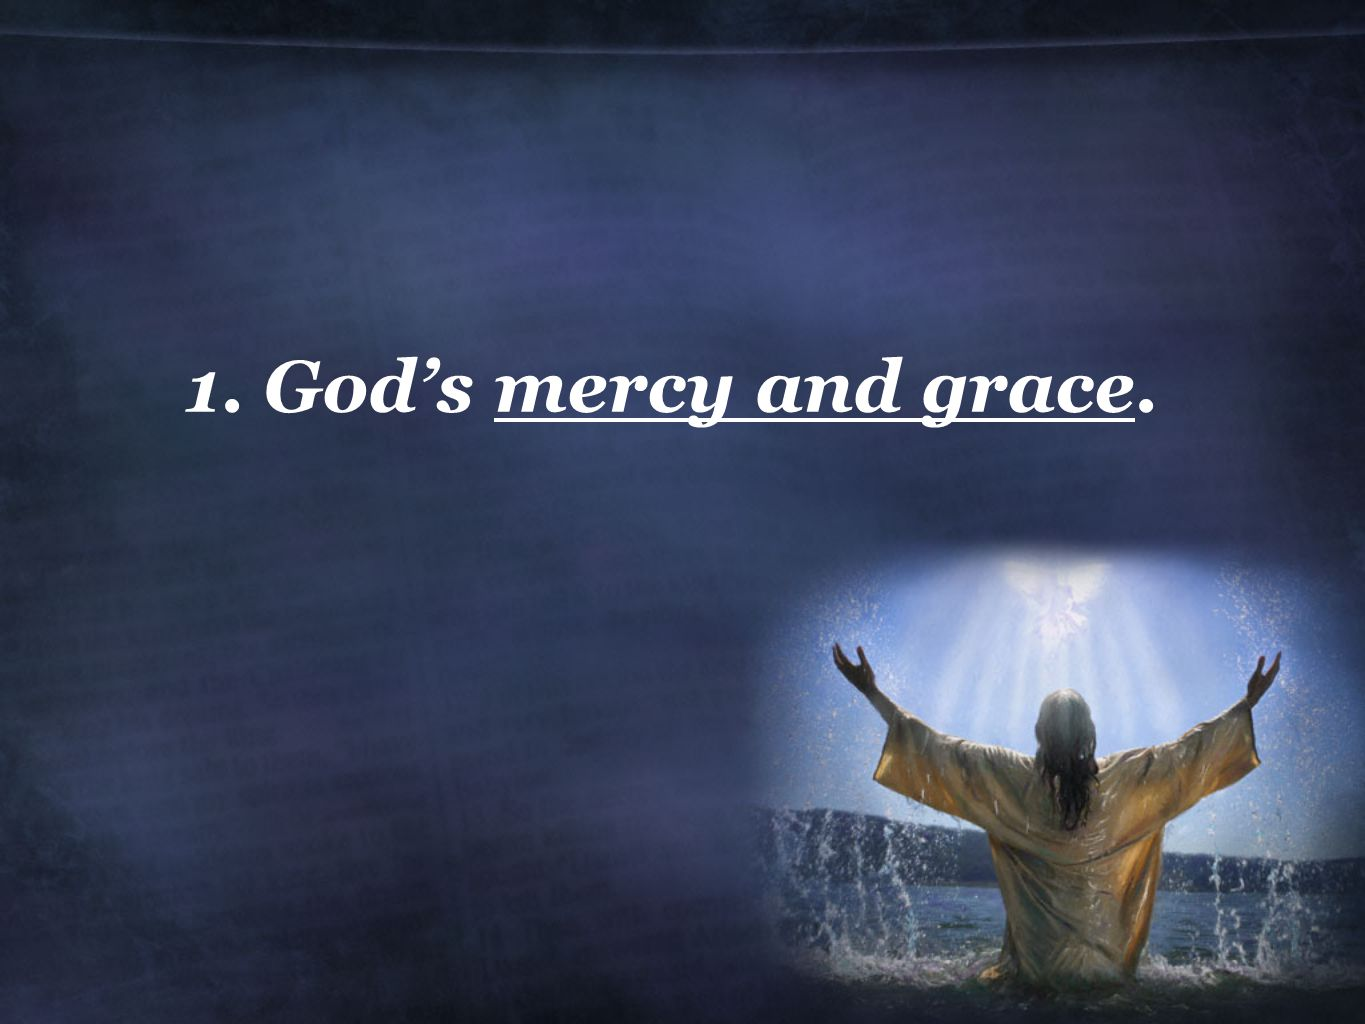 1. God's mercy and grace.